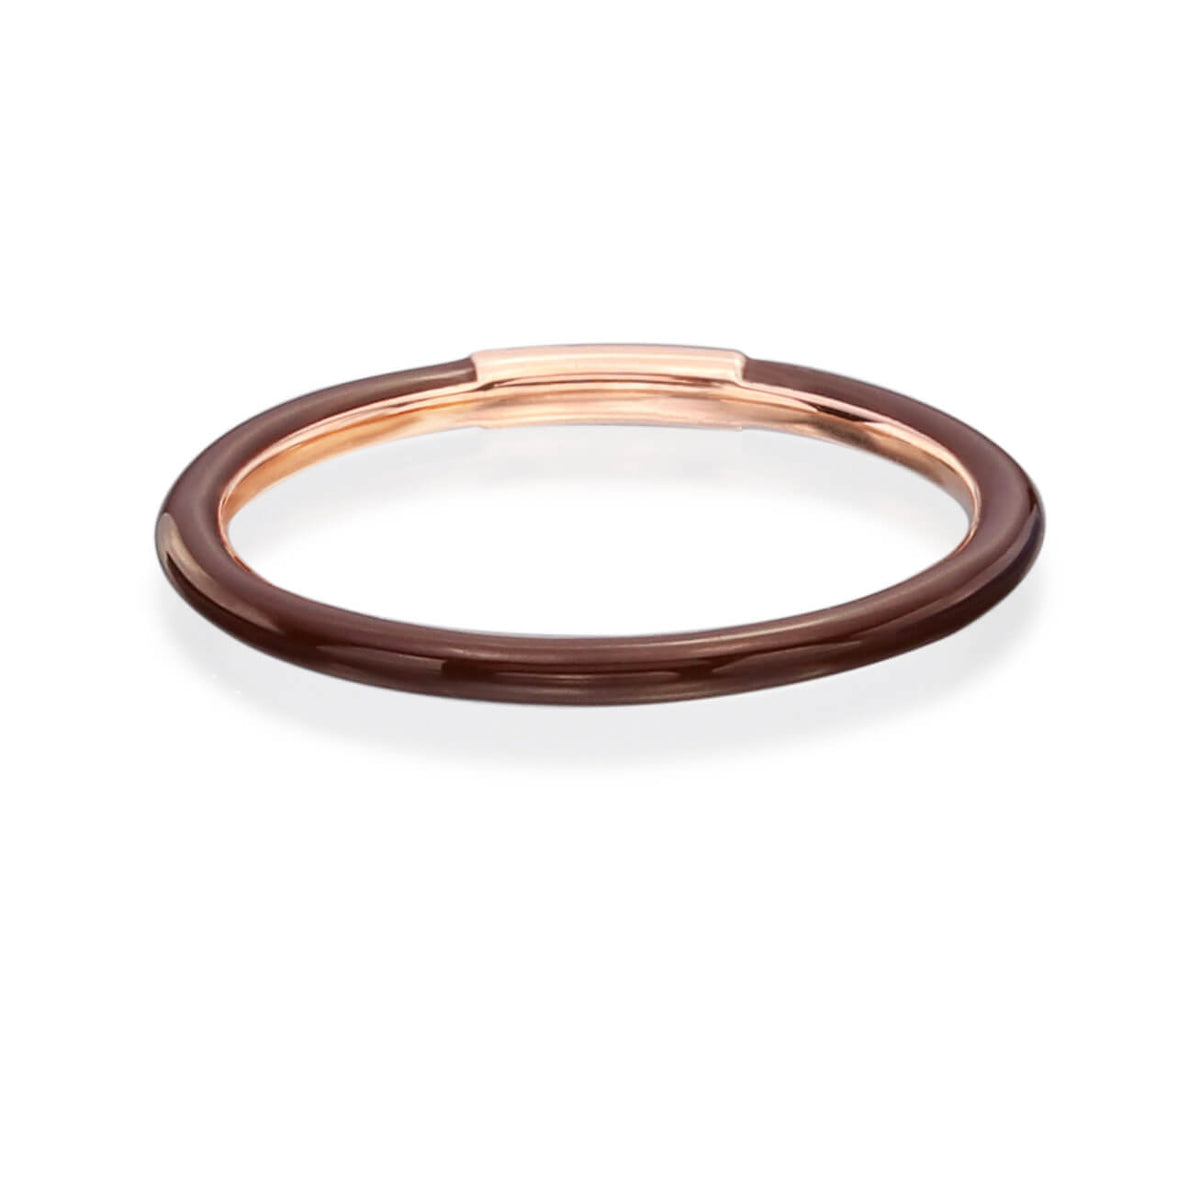 Enamel Band in Chocolate Brown - Nina Runsdorf